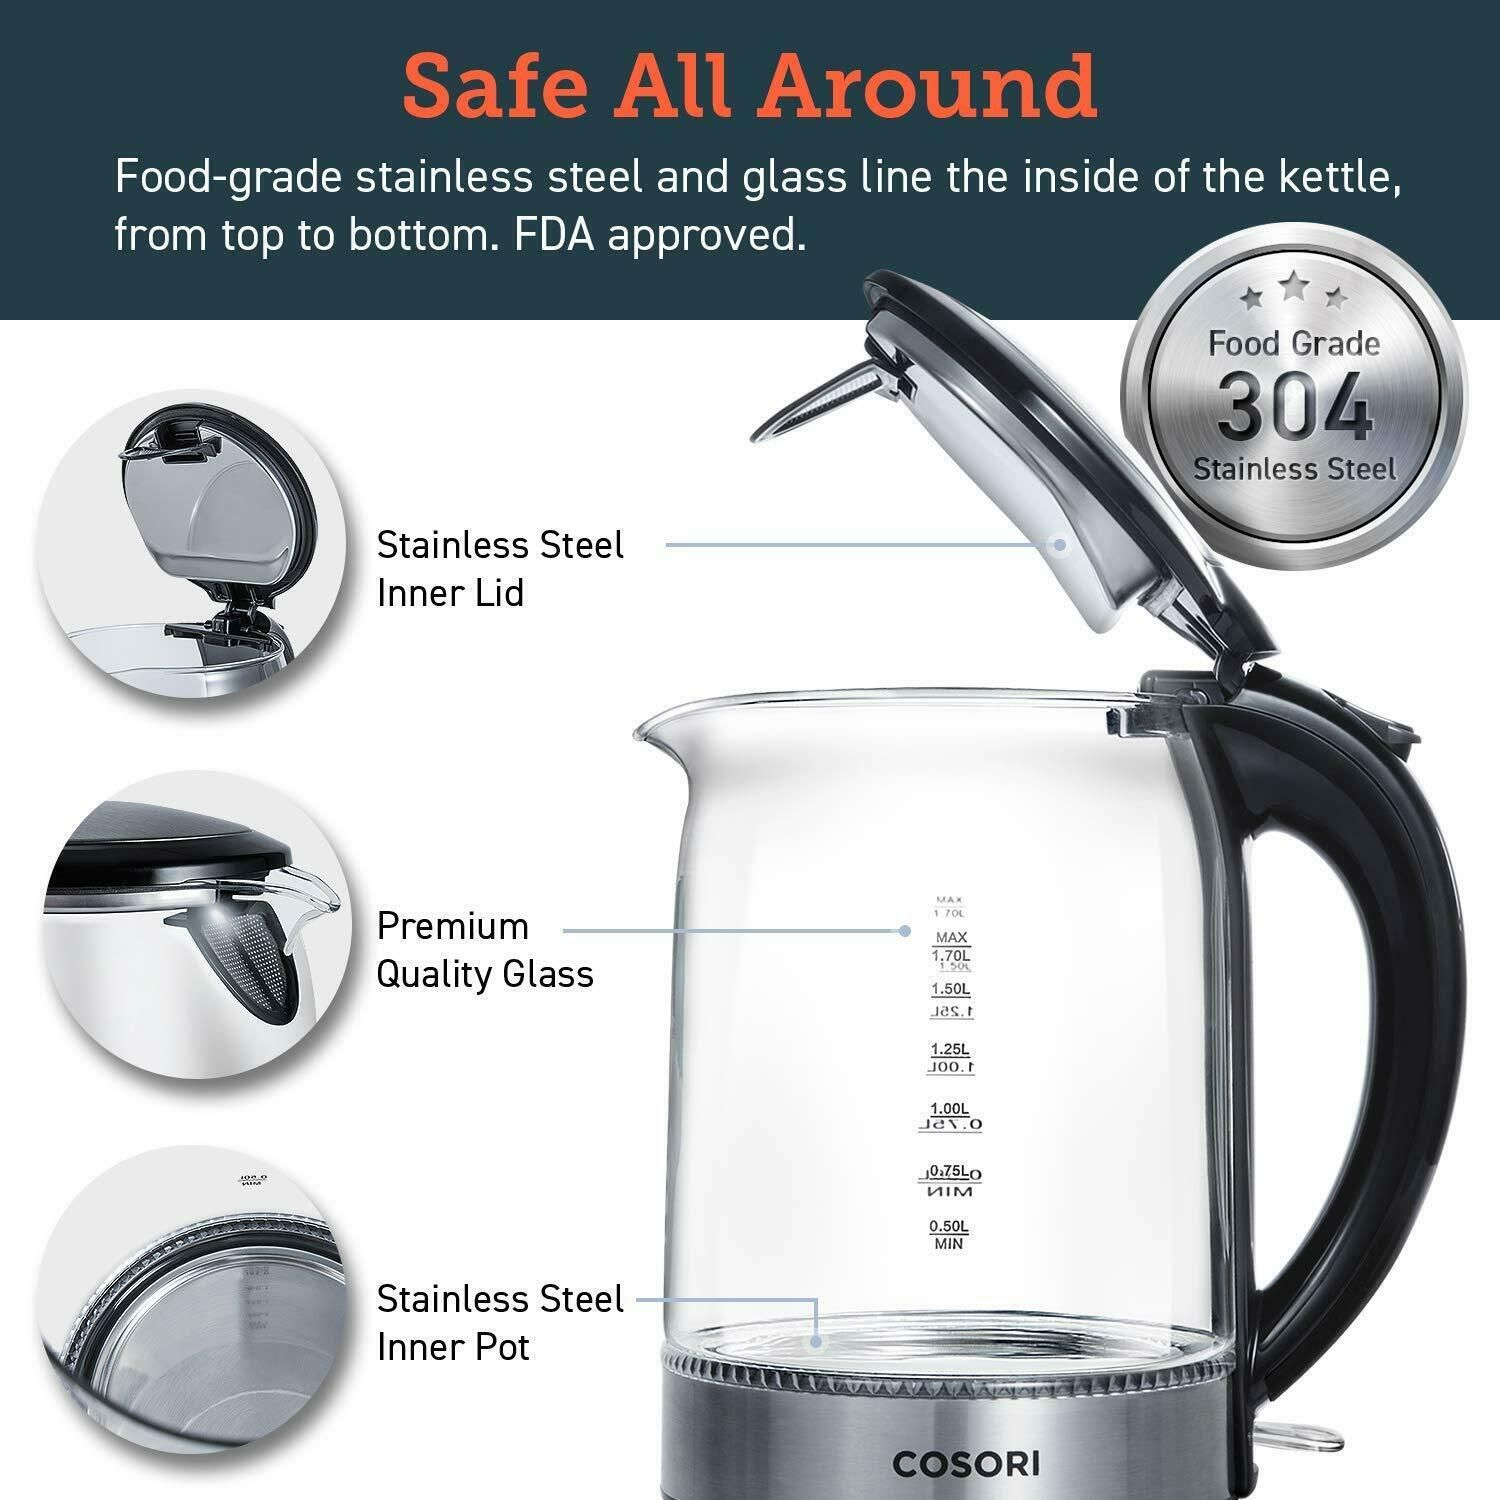 Cordless Glass Boiler Hot Water /& .. BPA-Free New COSORI 1.7L Electric Kettle